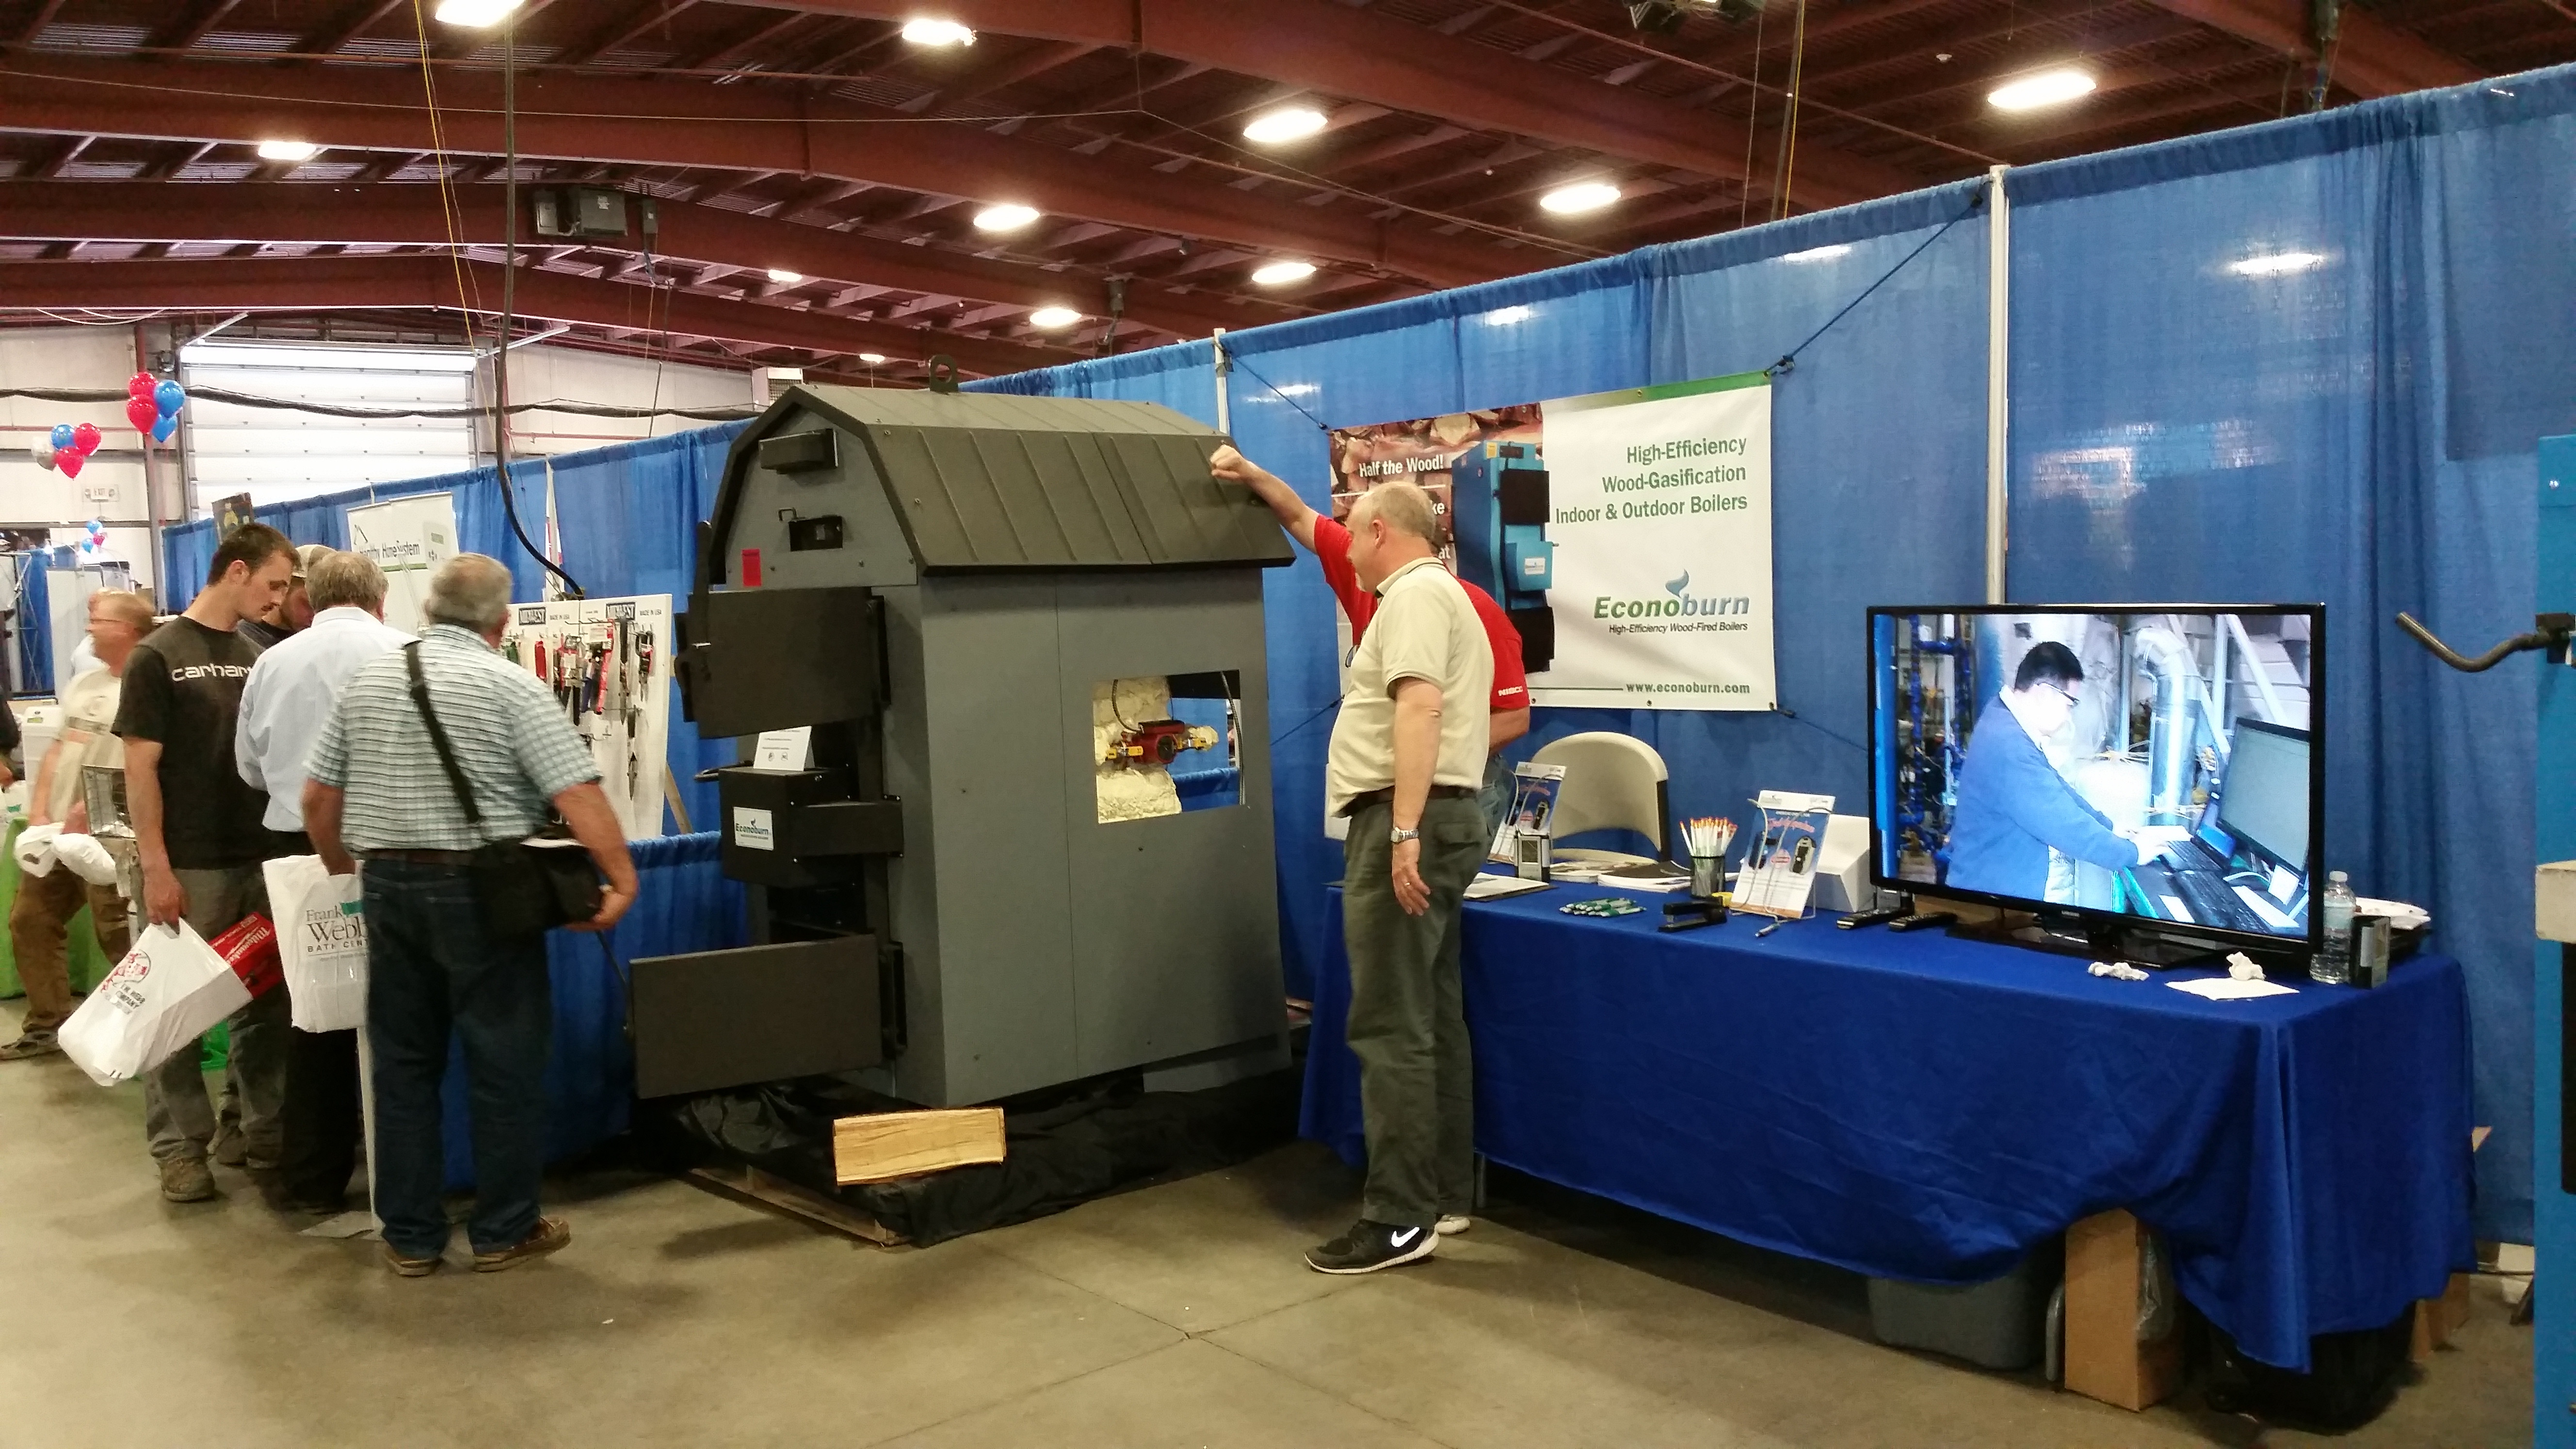 mohawk hardwood flooring distributors of wood fueled boilers page 2 for a great time for econoburn at the f w webb vermont expo econoburns top new epa certified boilers were featured ebw200 170 ebw200 170w models